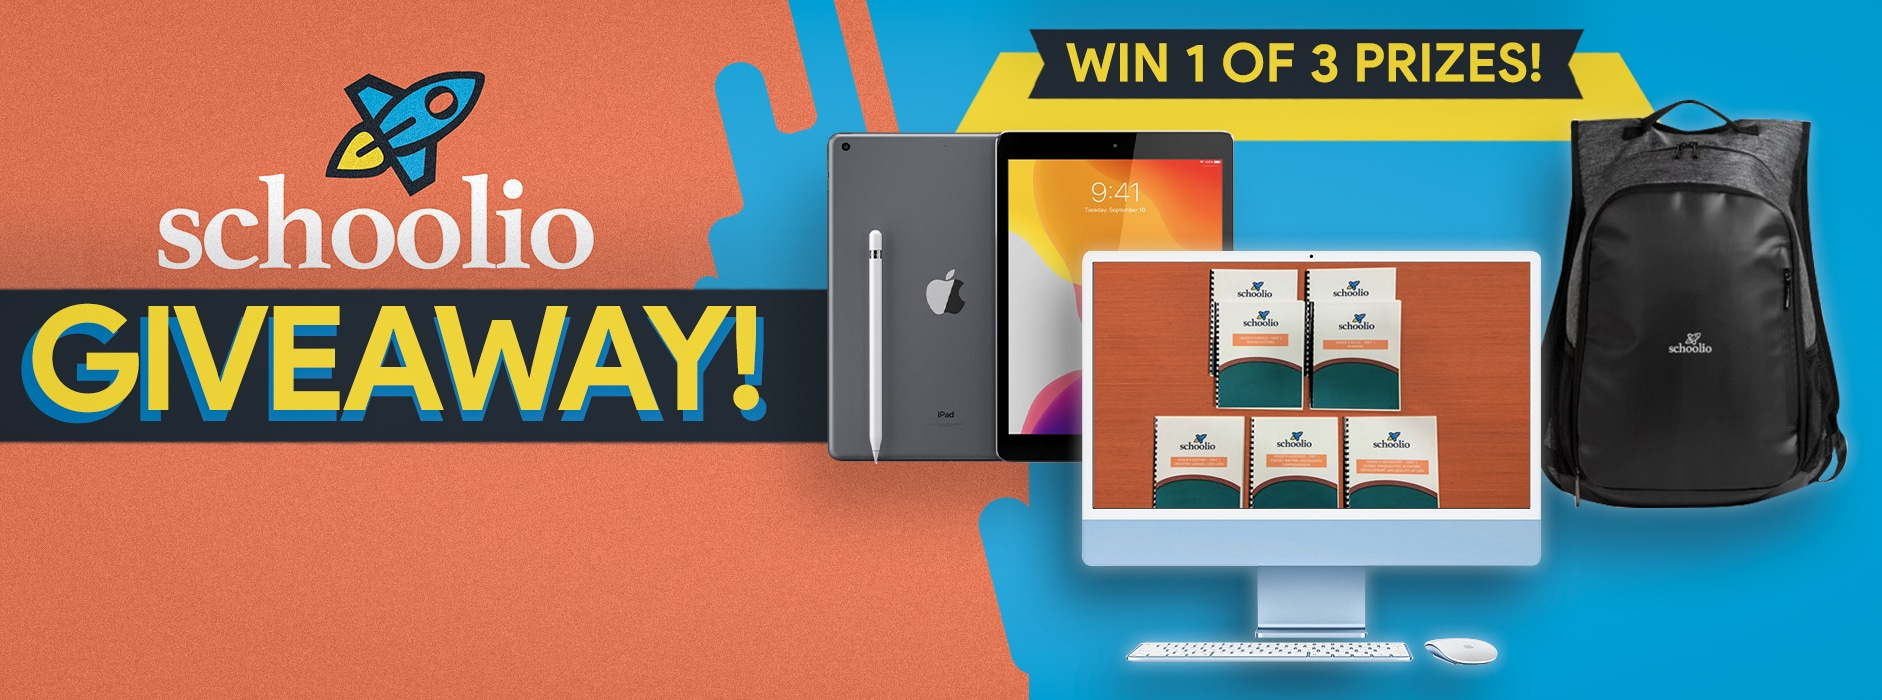 online contests, sweepstakes and giveaways - Schoolio Back To Learning Giveaway!